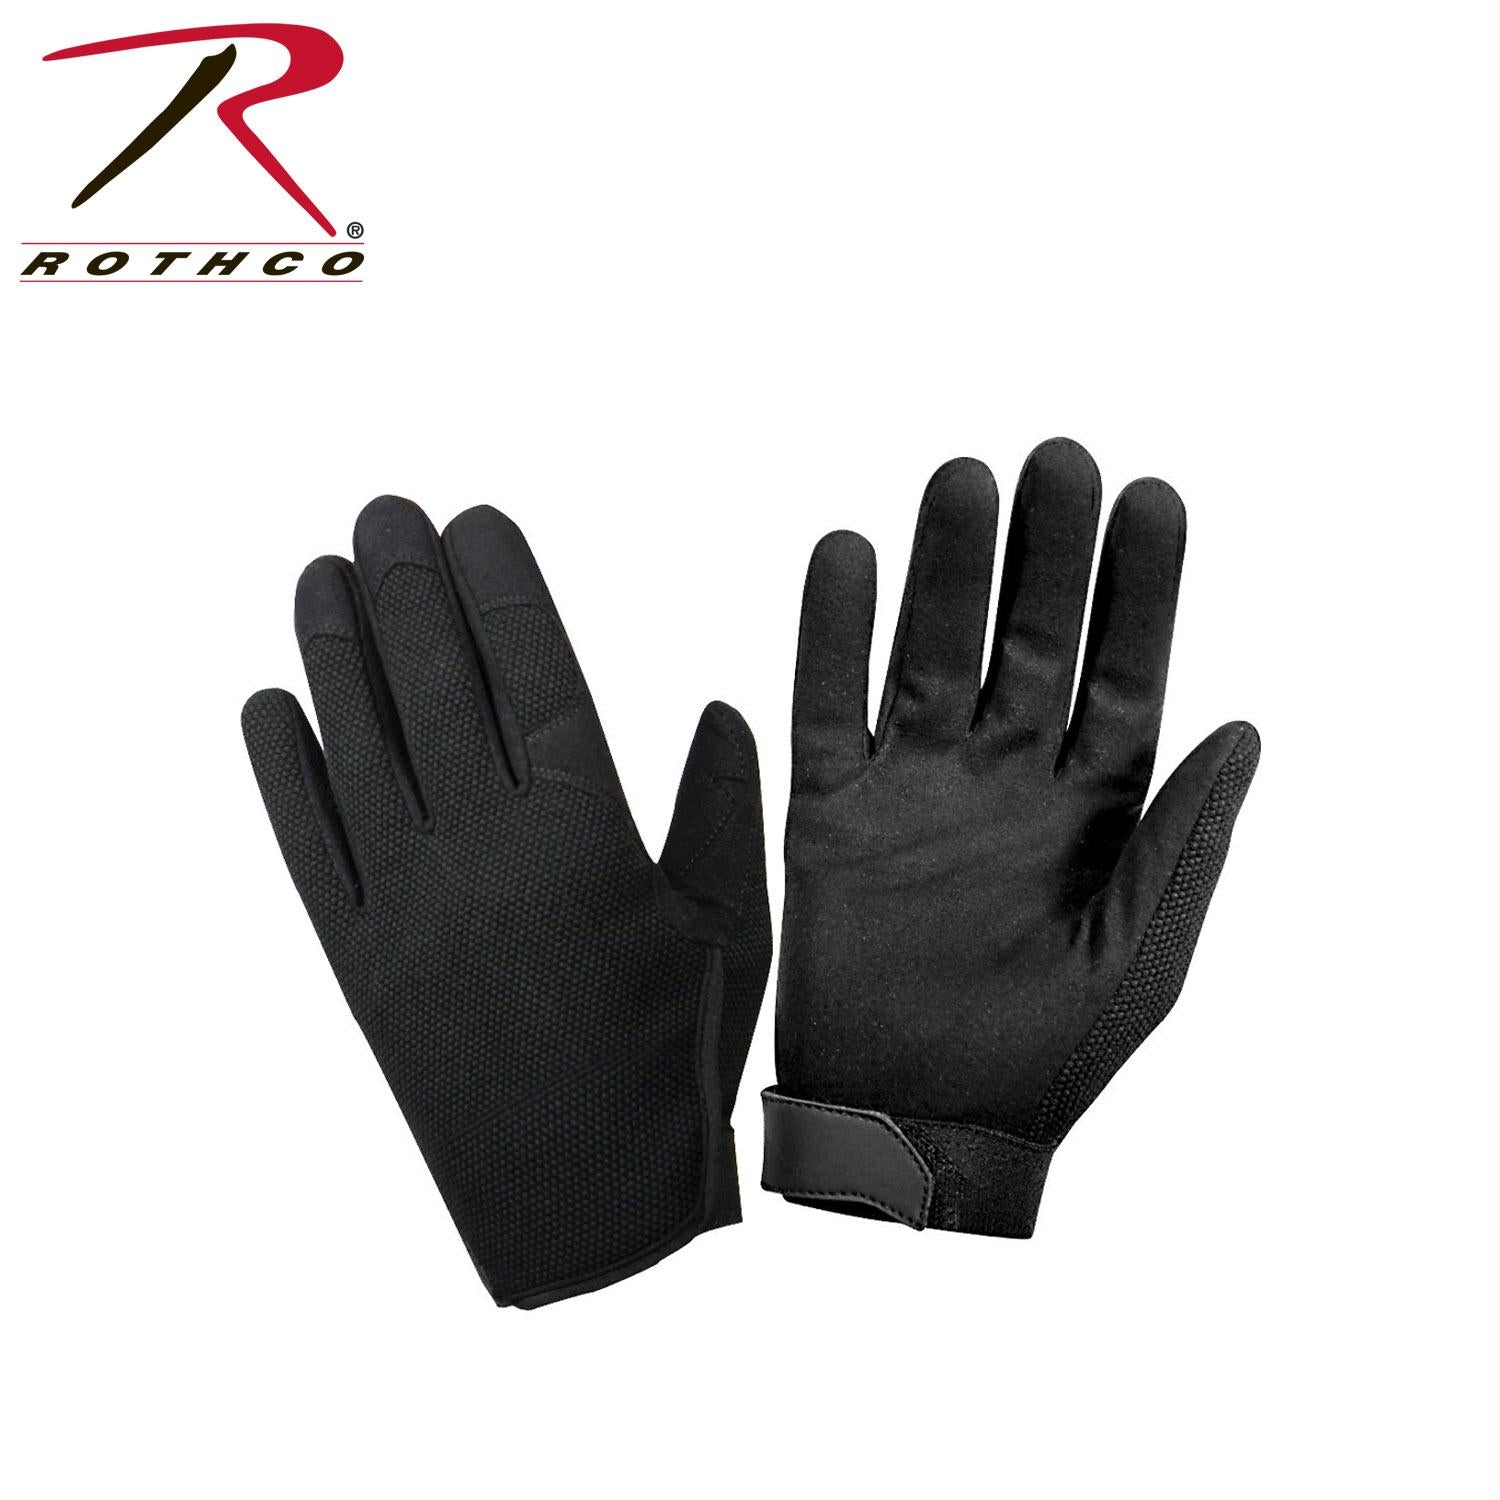 Rothco Ultra-light High Performance Gloves - Black / M